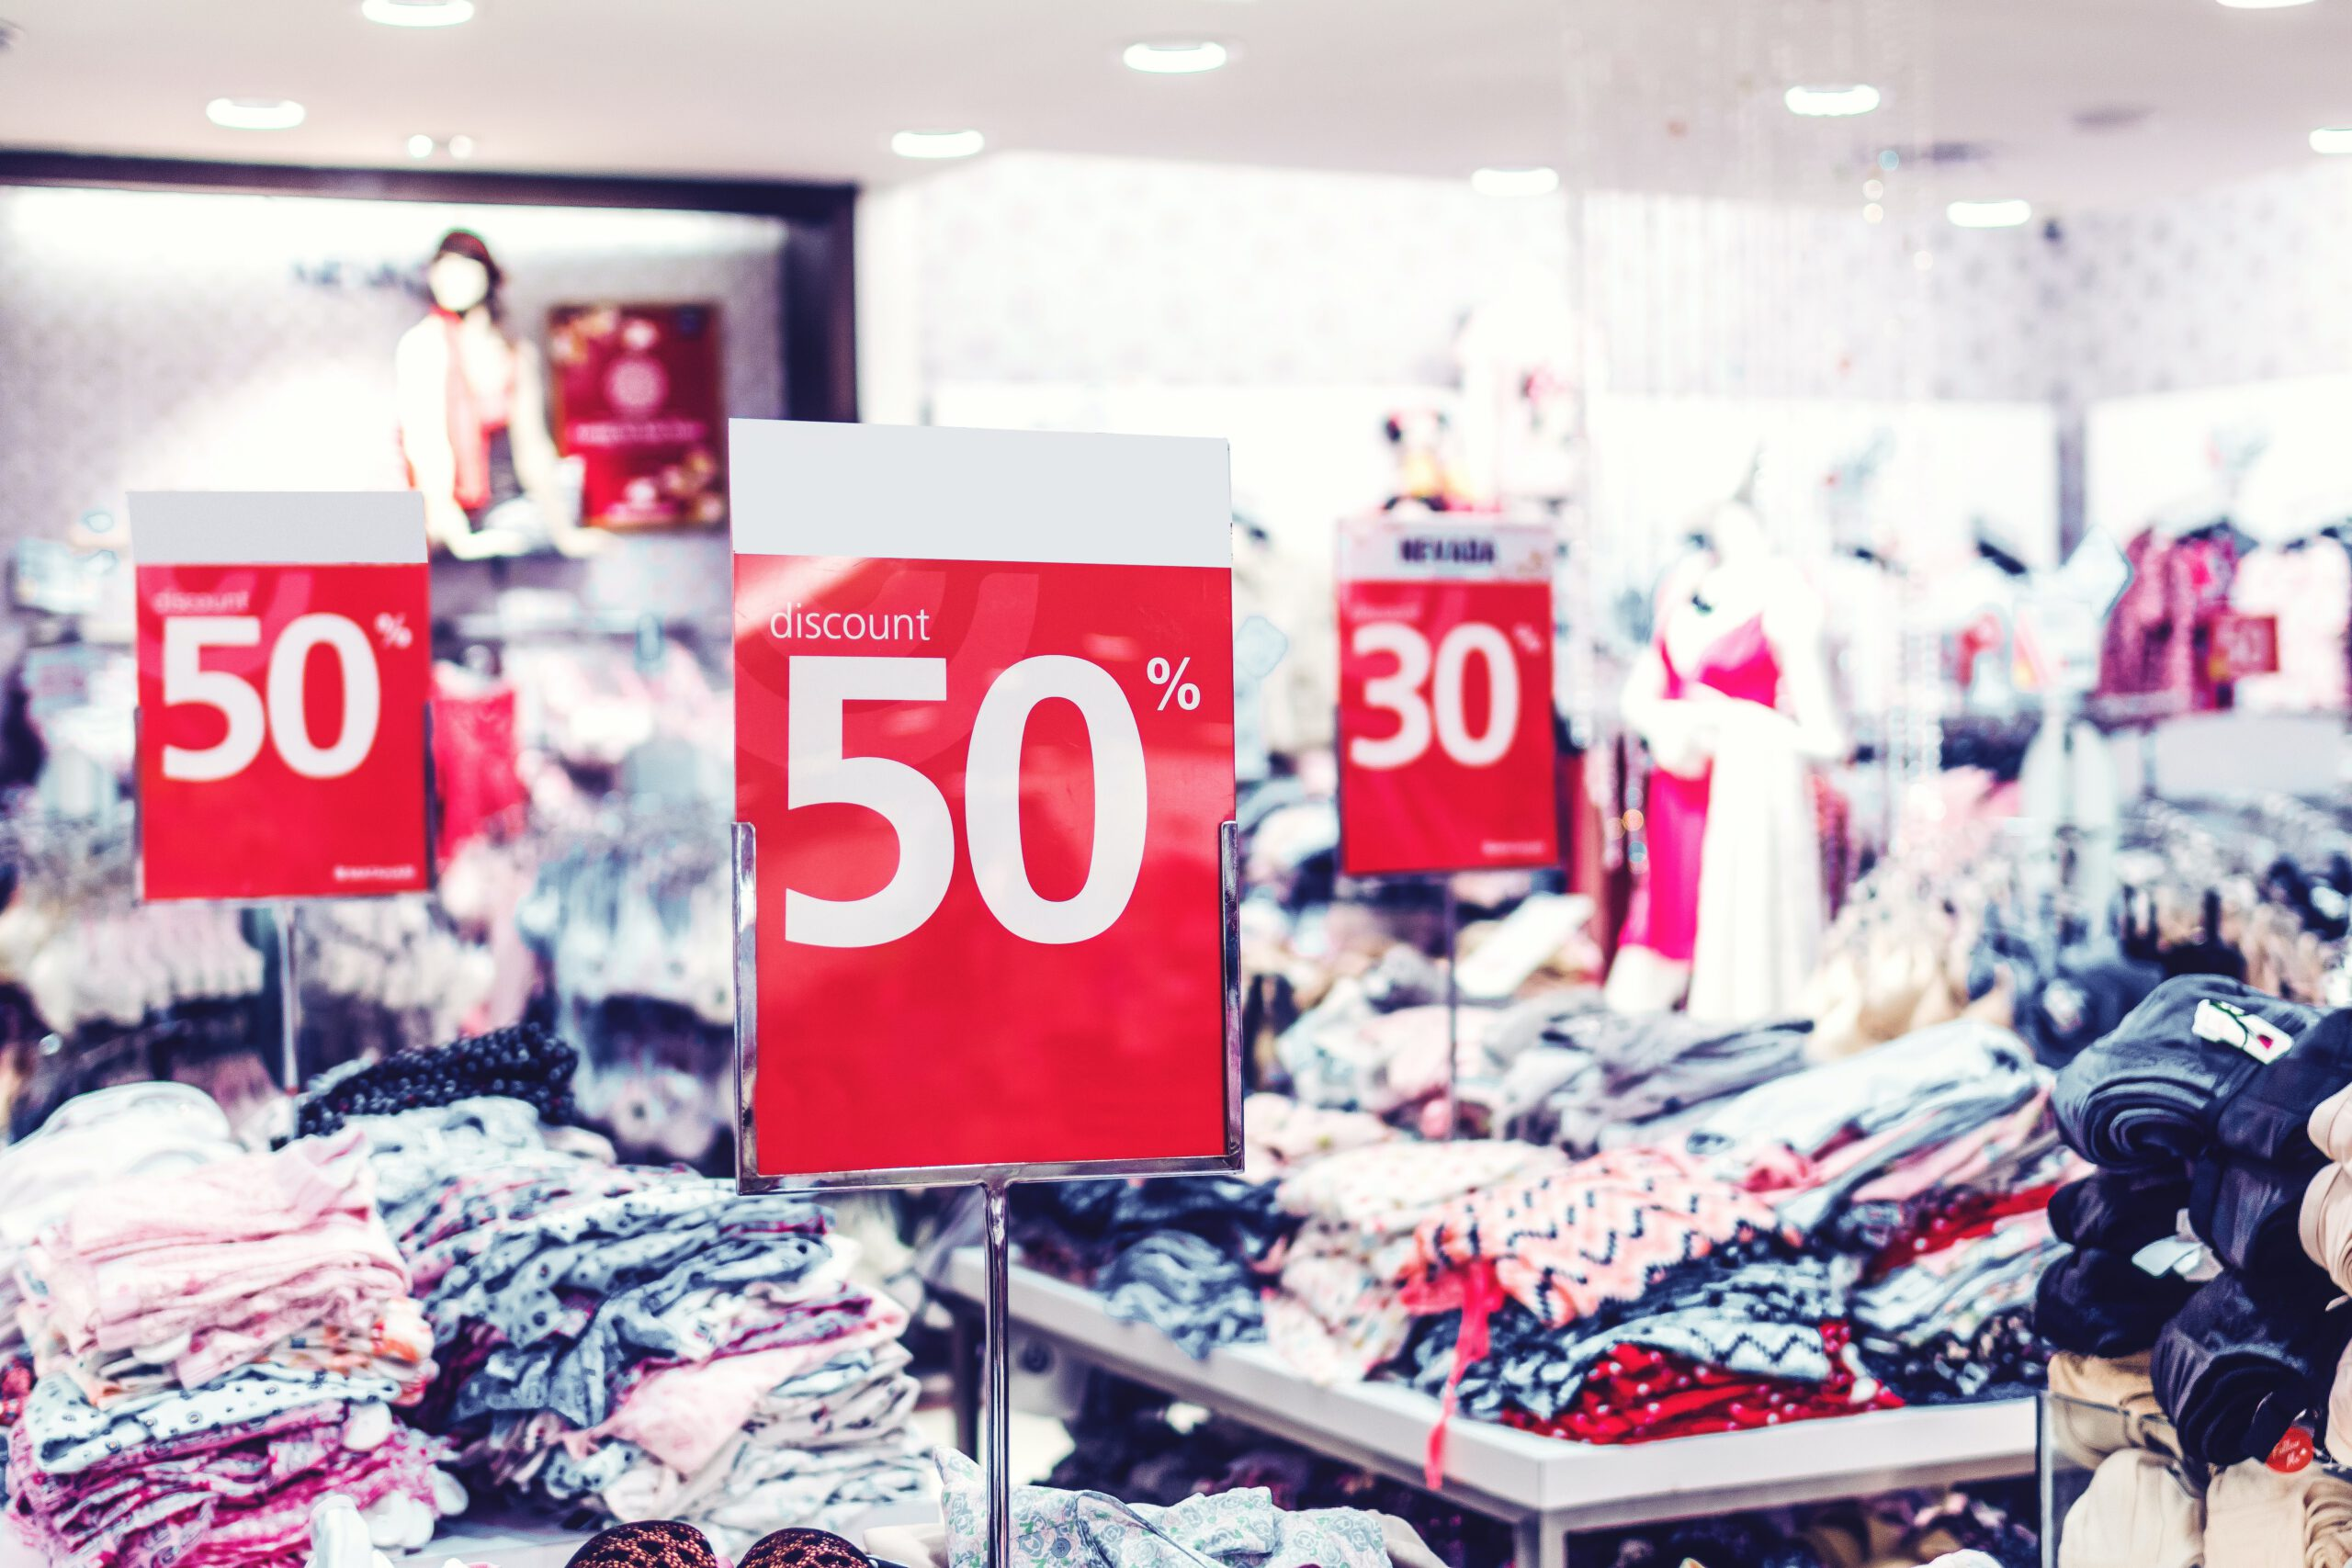 Transforming the Retail Experience With In-Store Automation